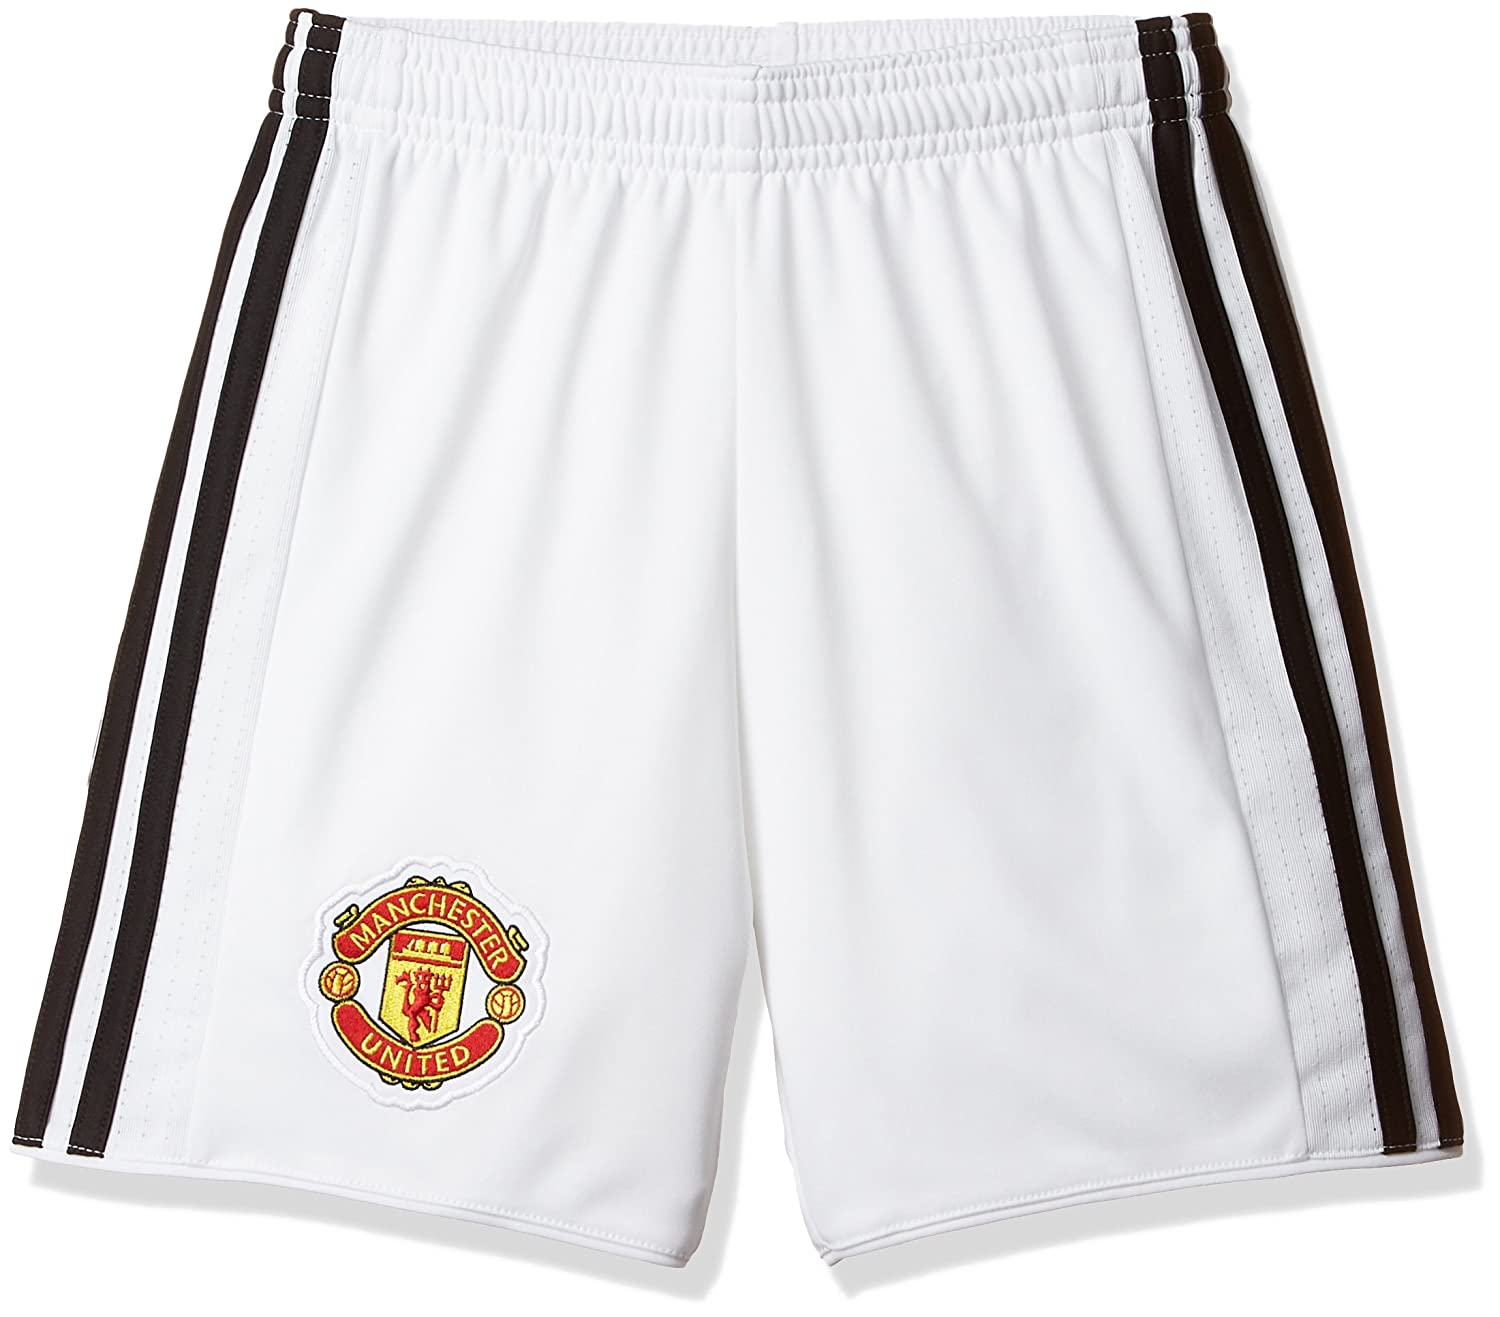 adidas Children's Replica Manchester United Home Football Shorts, Children's, AZ7579, white/black Children's